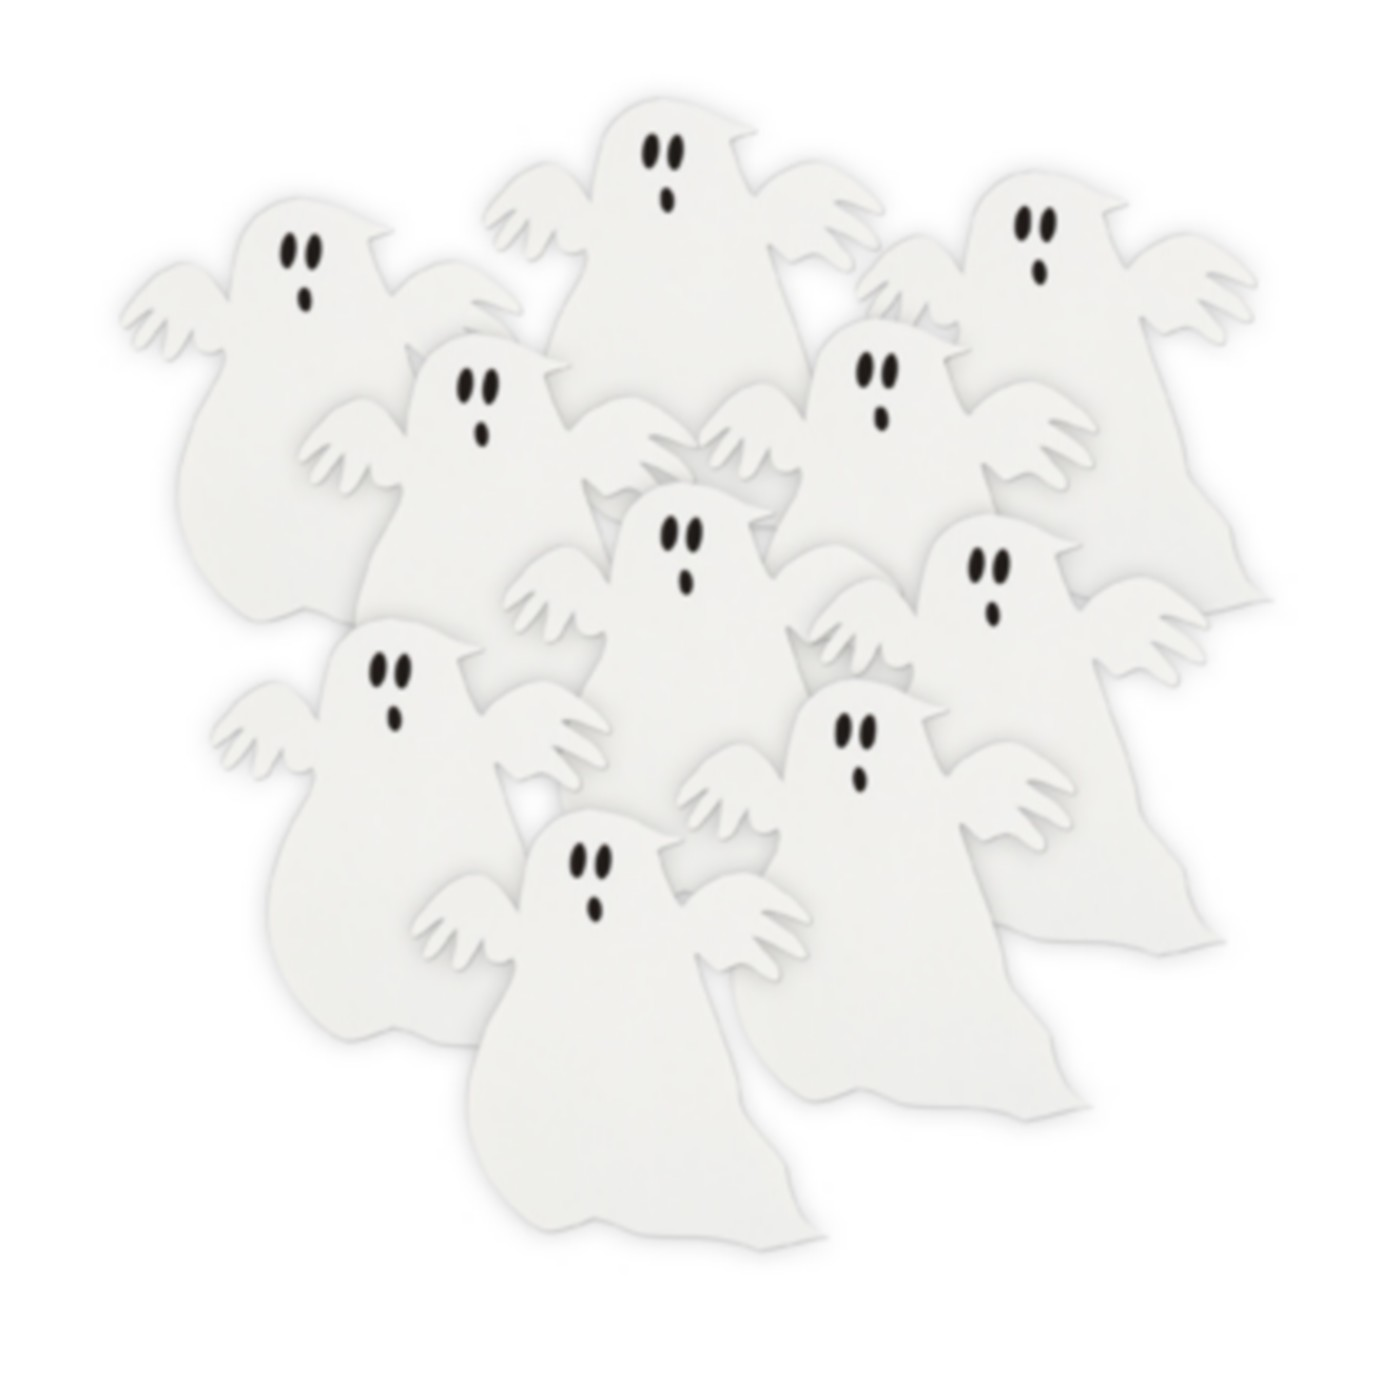 D corations de table fant me halloween - Fantome halloween ...